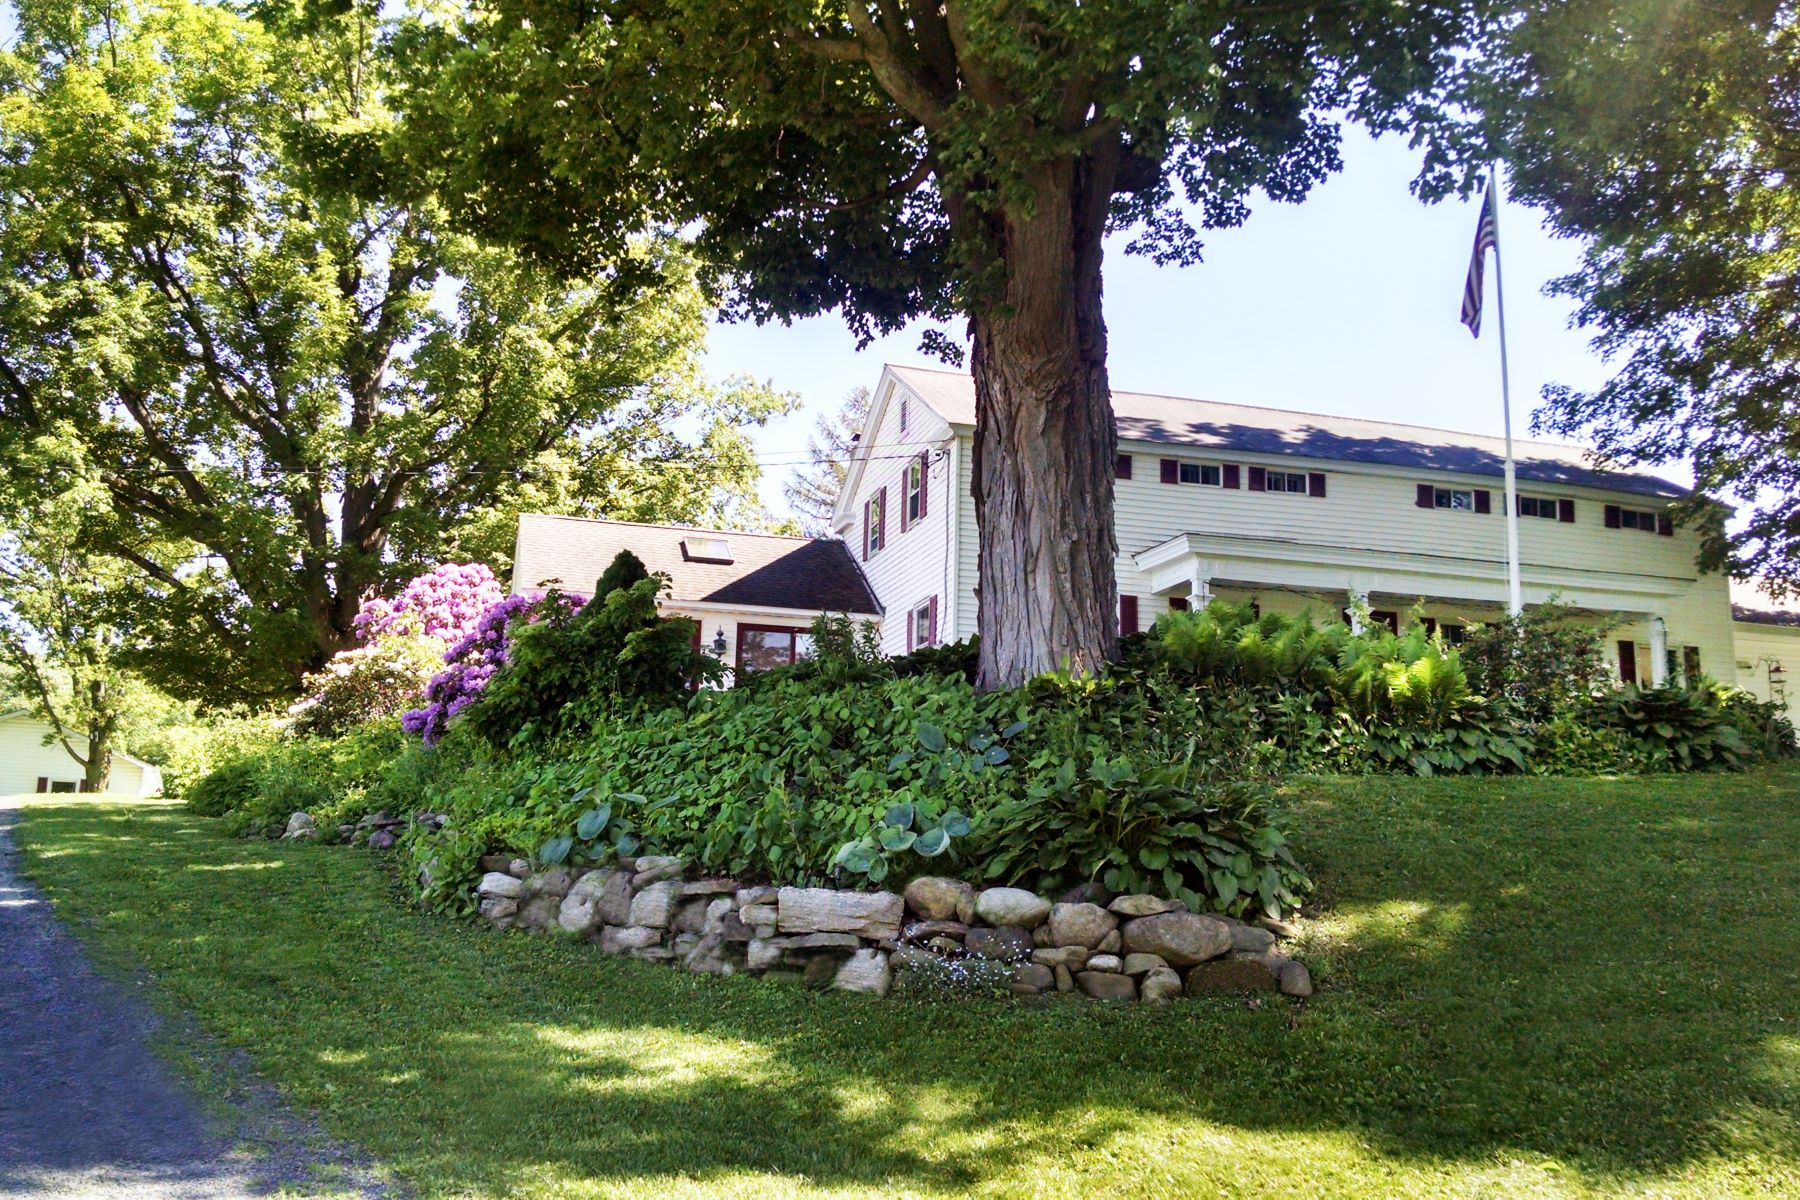 Single Family Homes for Sale at Picturesque Yates Estate 124 Dutchess Dr Sprakers, New York 12166 United States